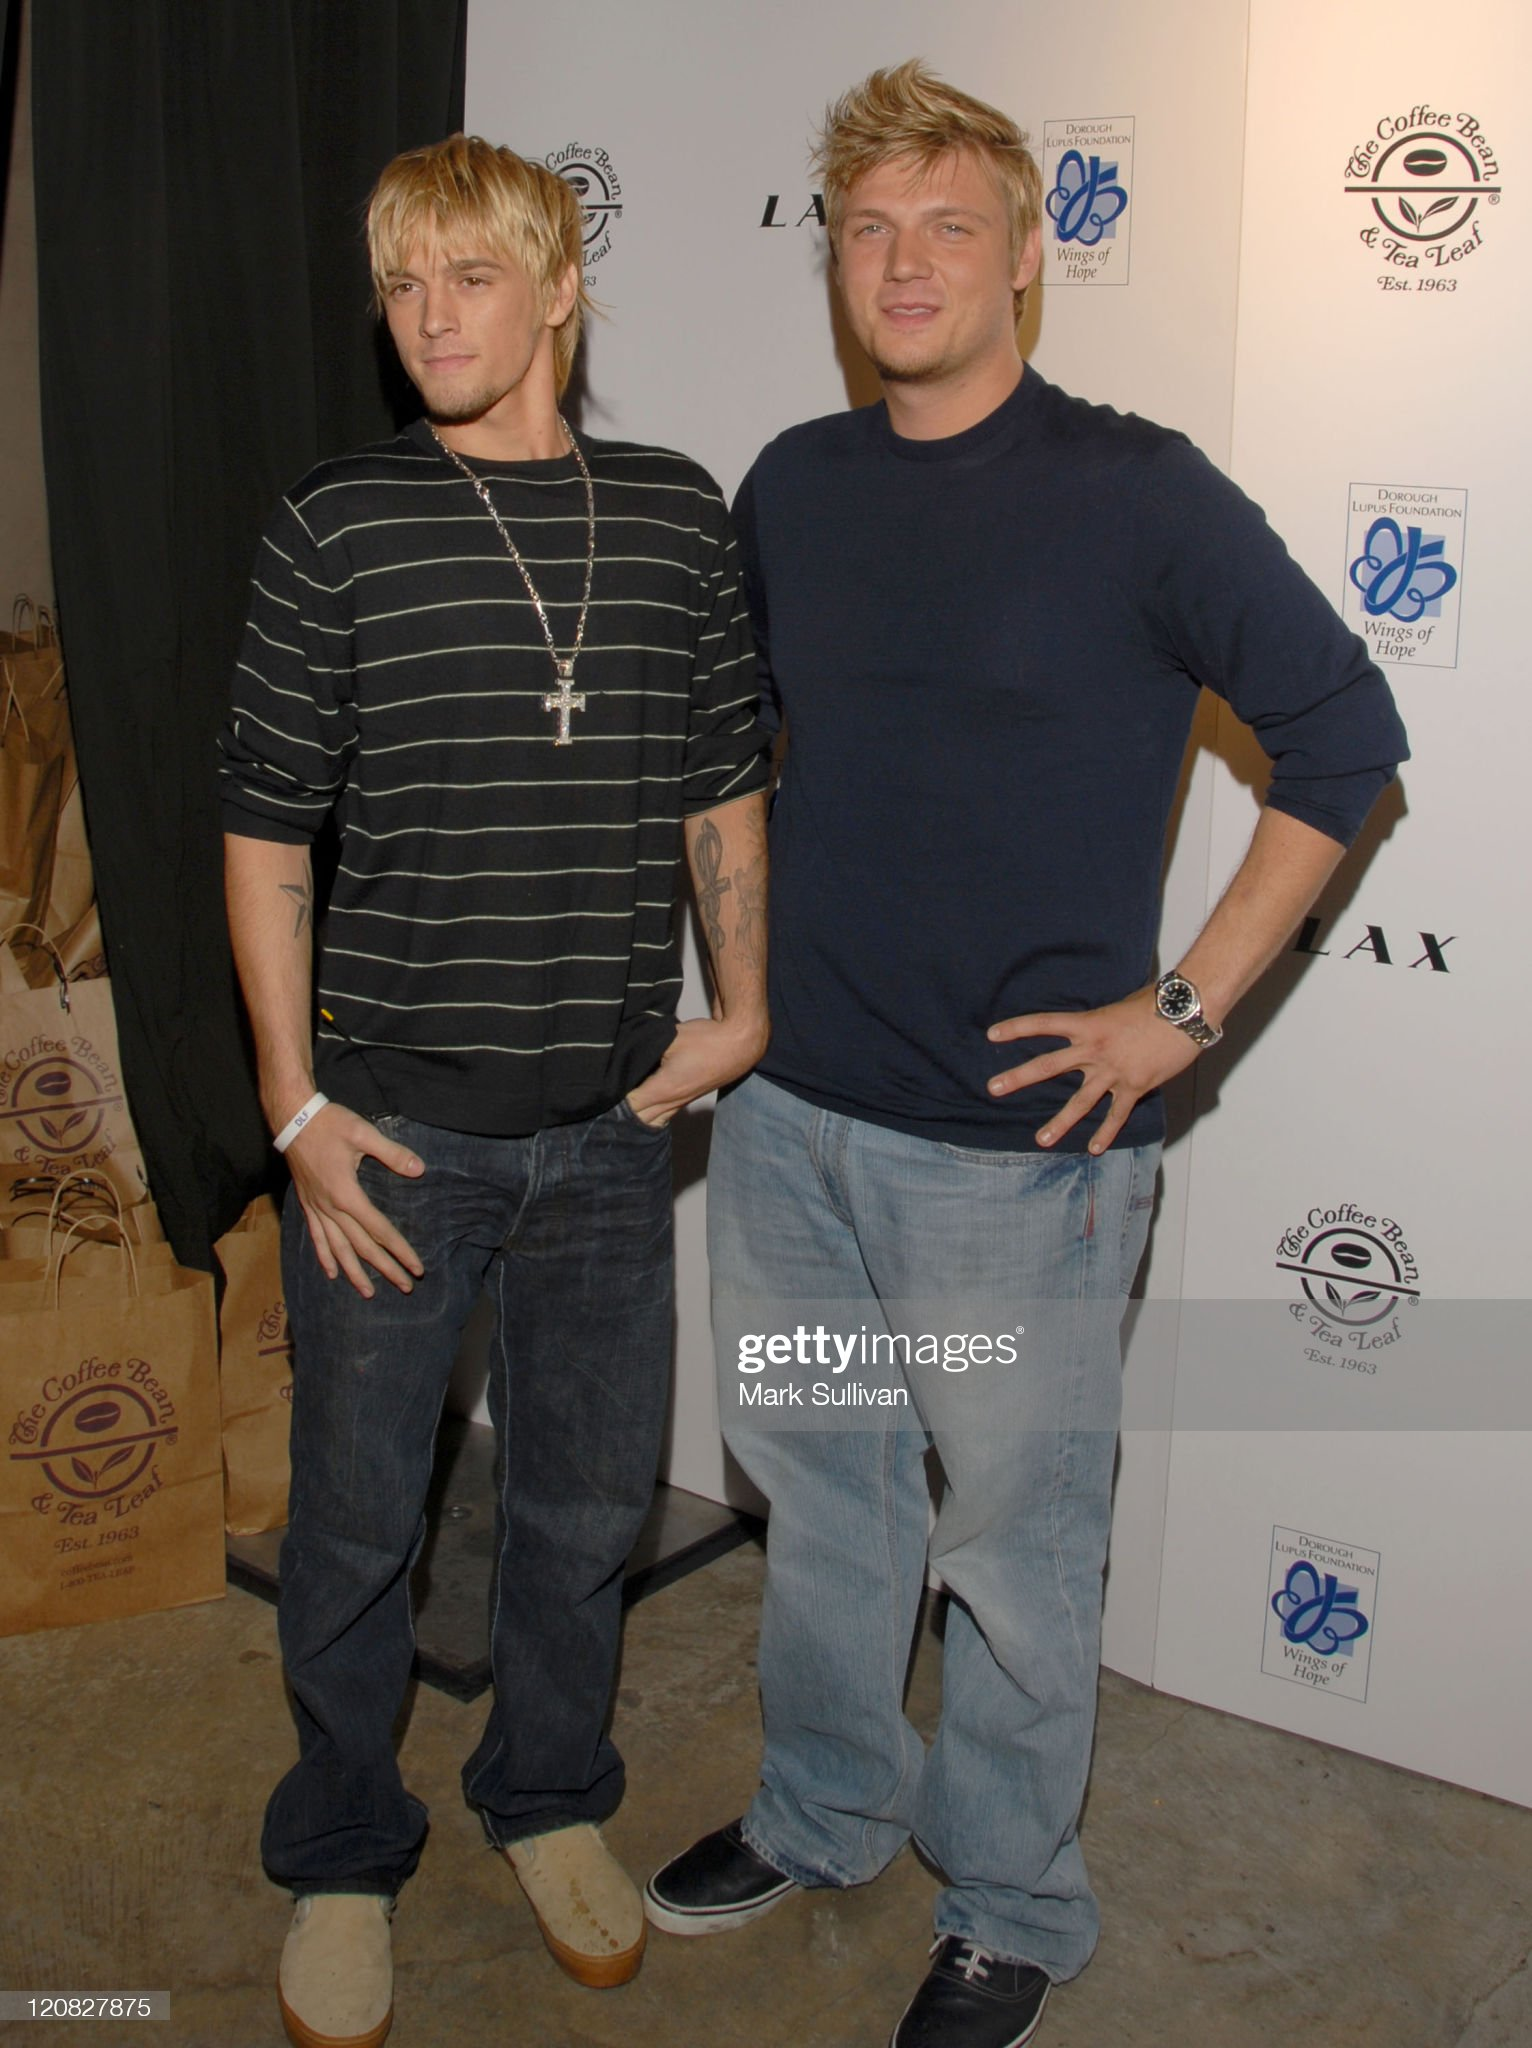 ¿Cuánto mide Aaron Carter? - Estatura: 1,73 y peso - Real height and weight Aaron-carter-and-nick-carter-during-howie-doroughs-birthday-party-at-picture-id120827875?s=2048x2048